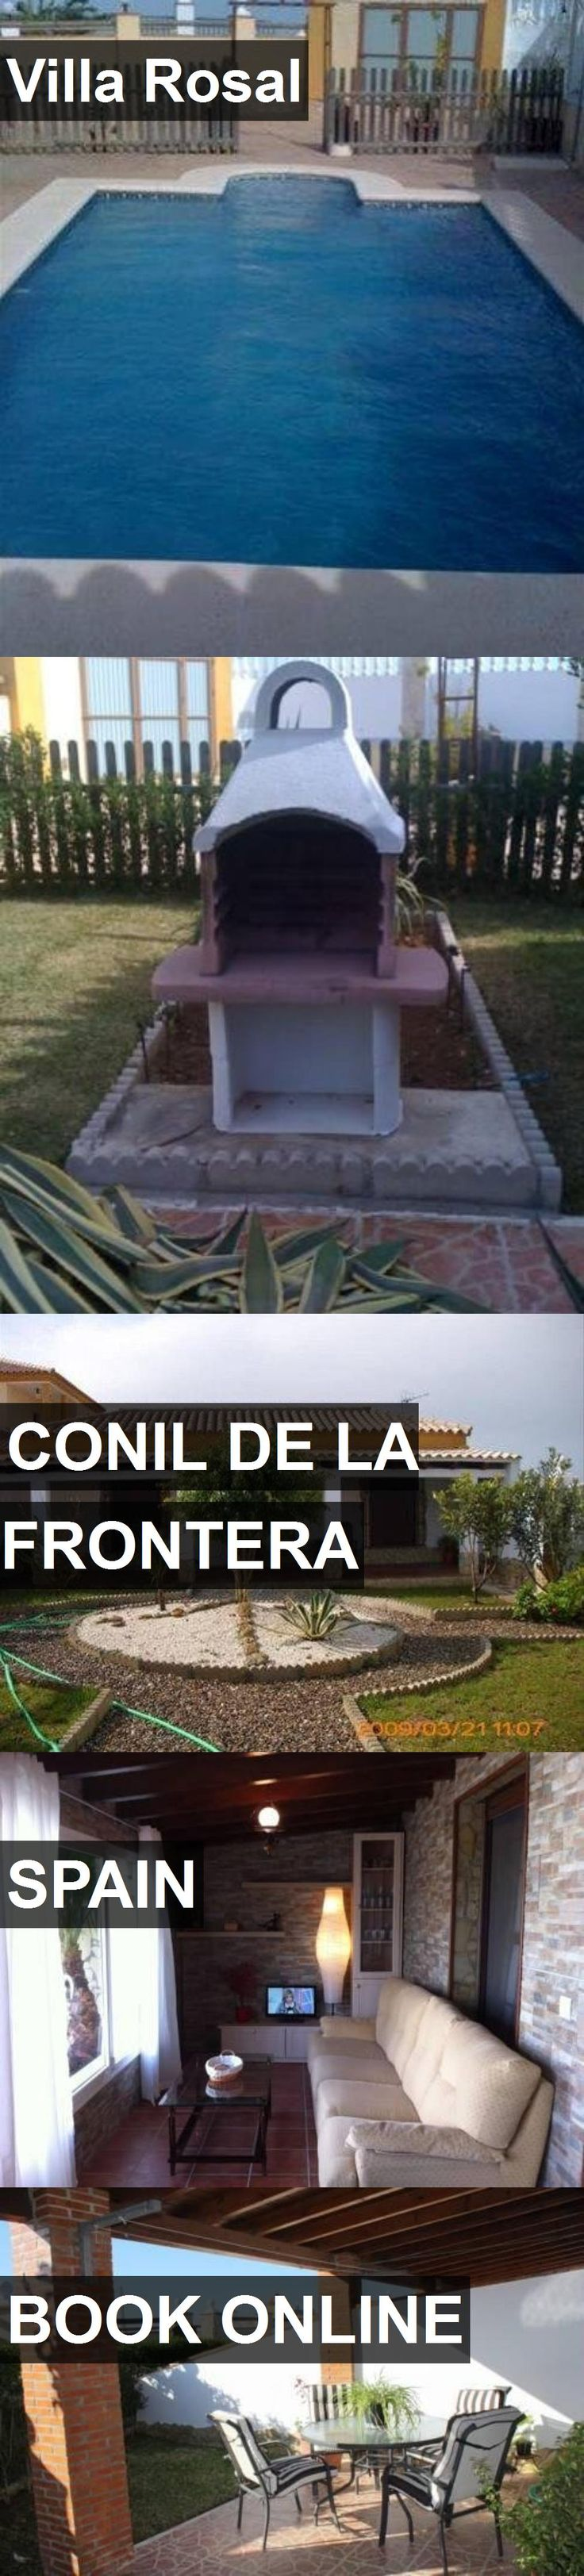 Hotel Villa Rosal in Conil de la Frontera, Spain. For more information, photos, reviews and best prices please follow the link. #Spain #ConildelaFrontera #travel #vacation #hotel